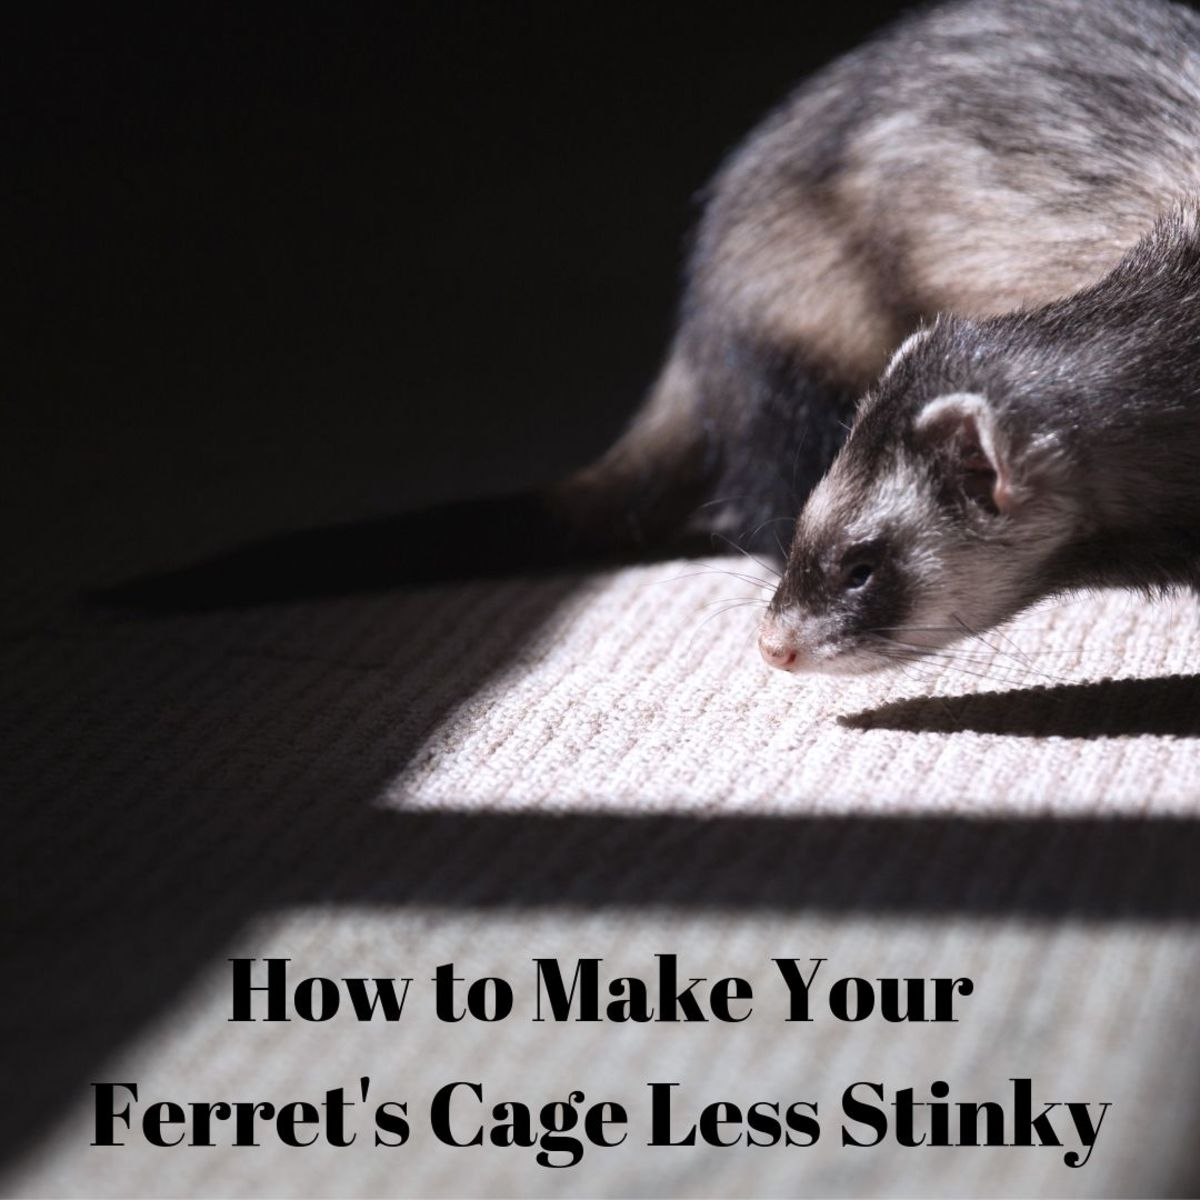 Five Ways to Make Your Ferret's Cage Smell Less